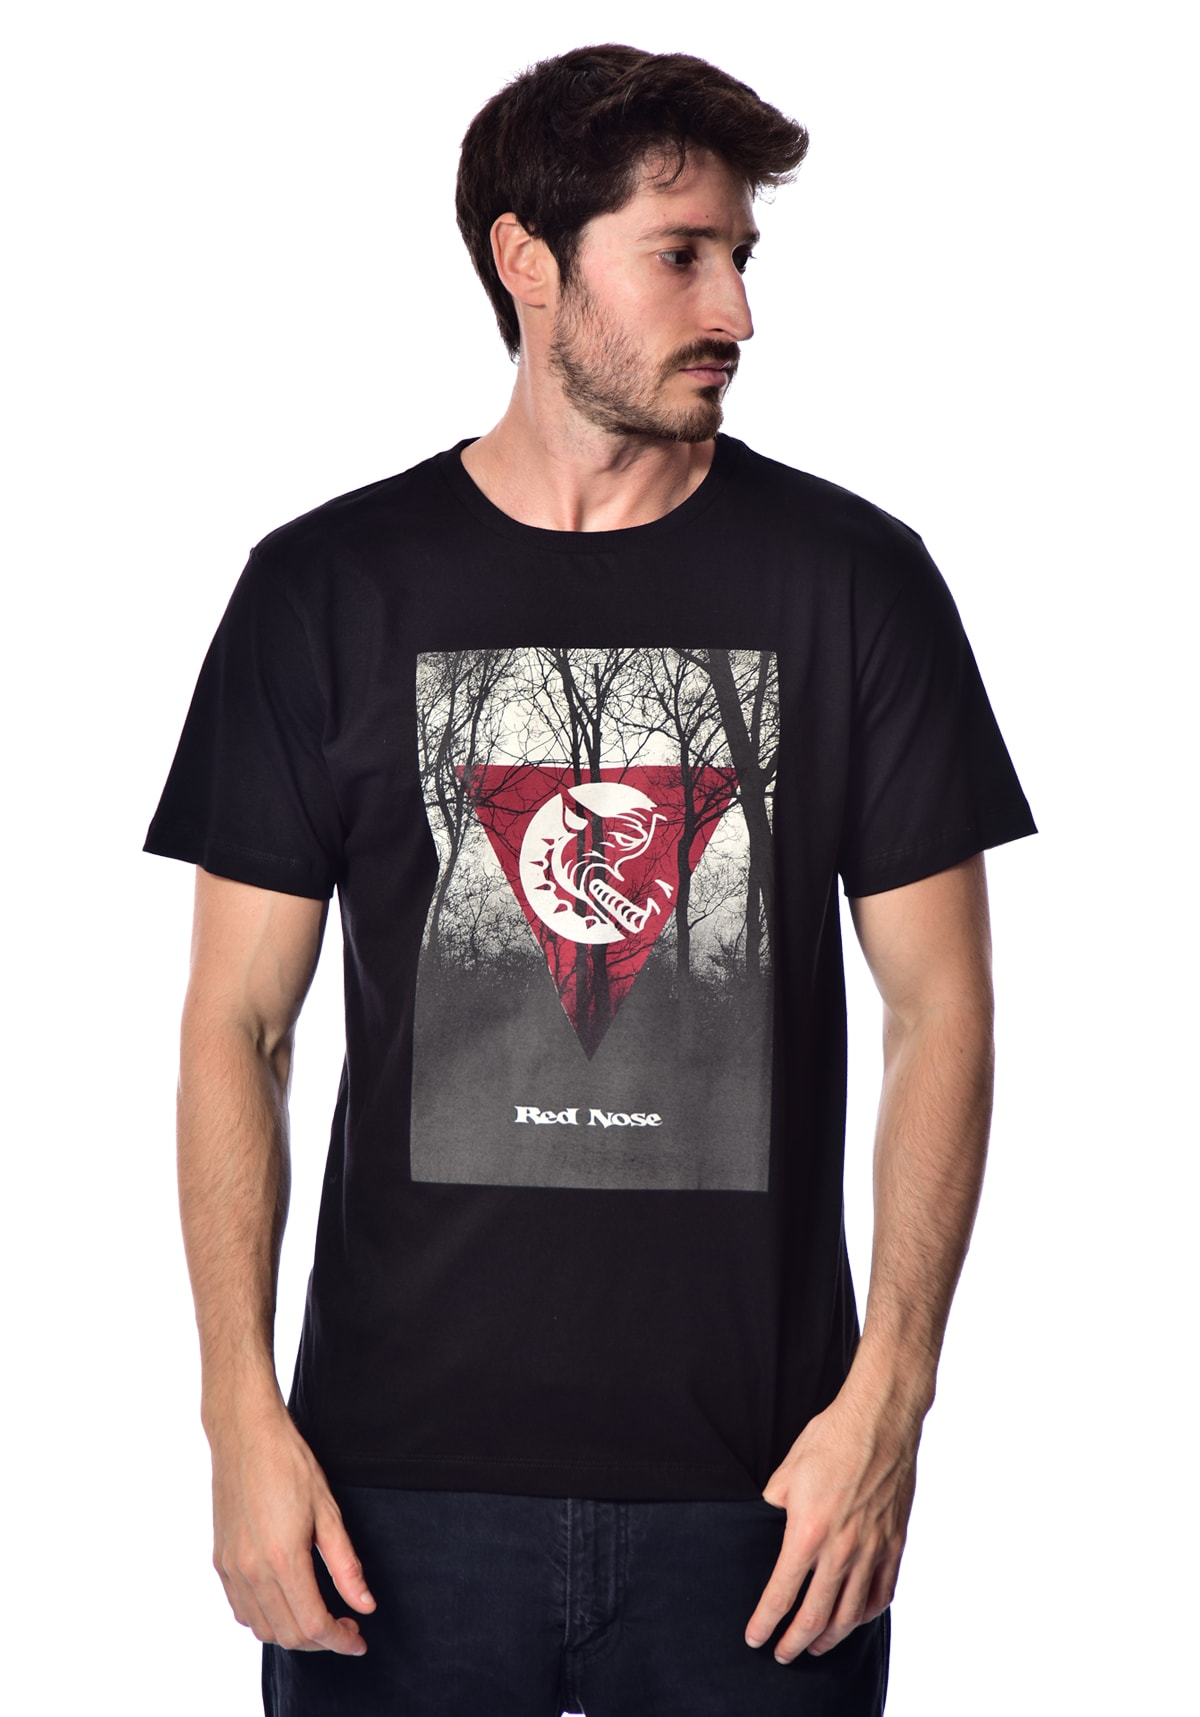 Camiseta Red Nose Triângulo - Preto P